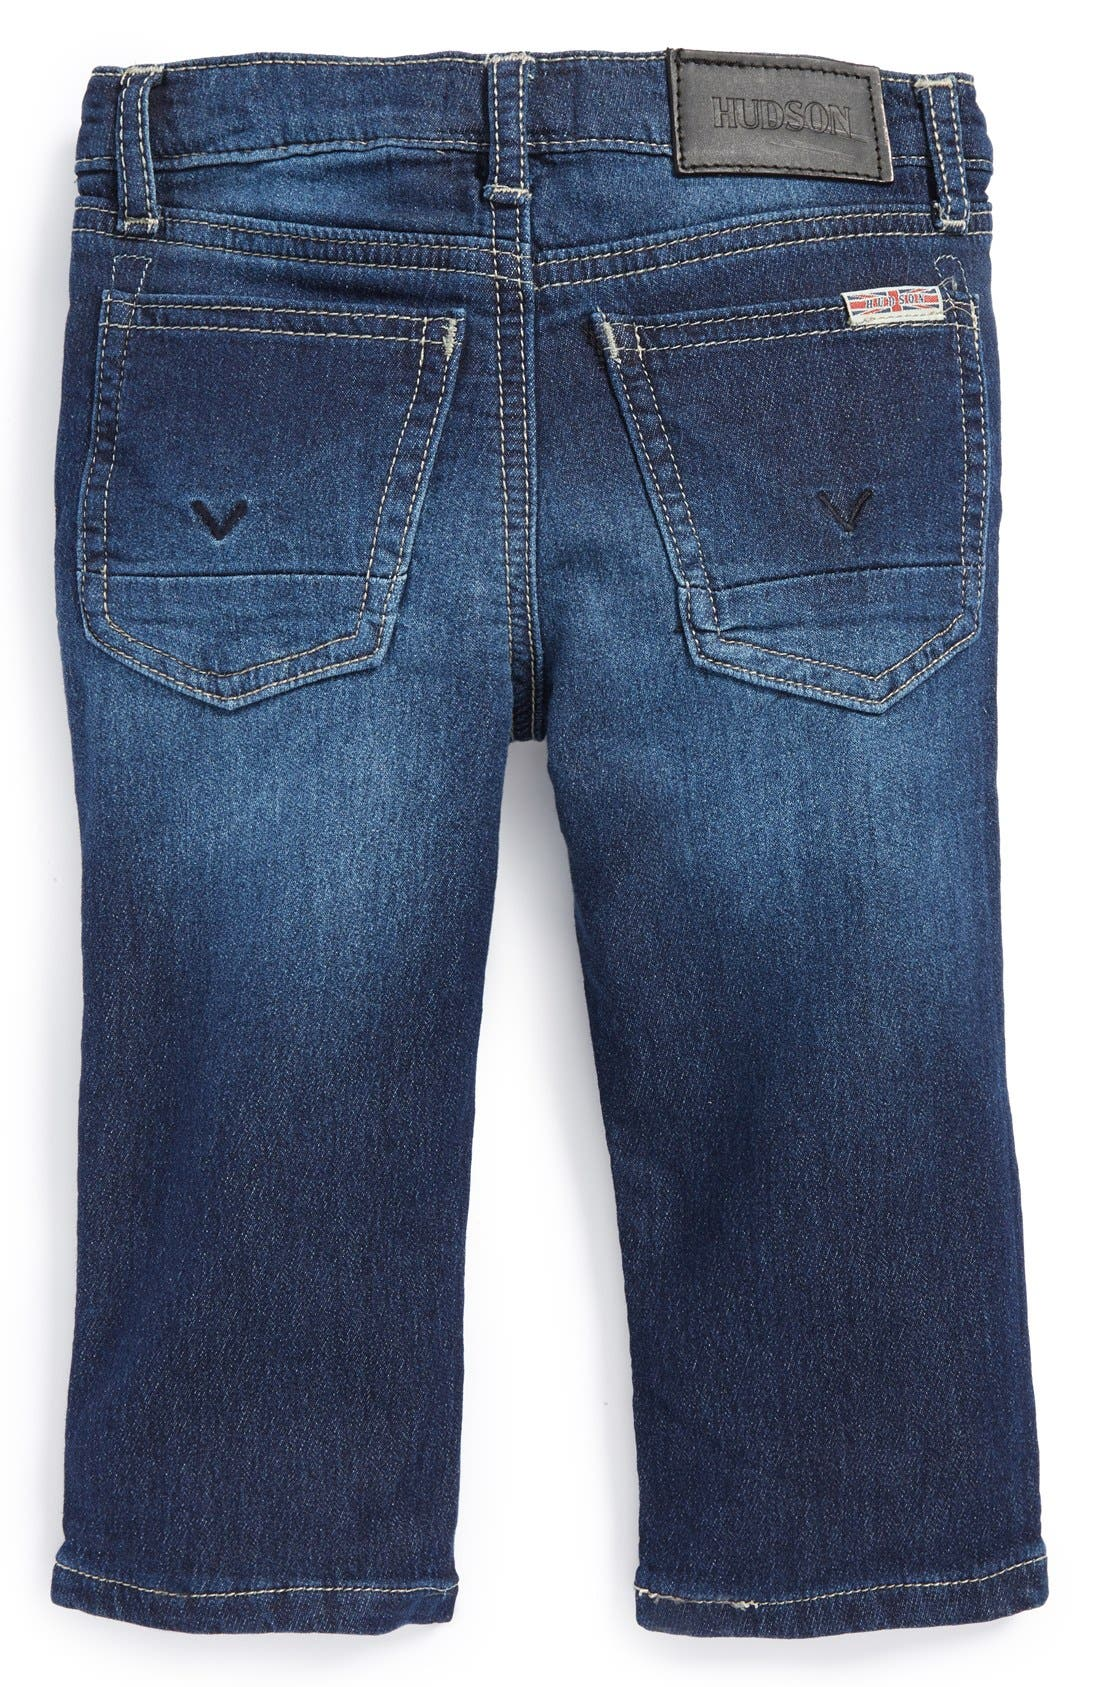 Alternate Image 2  - Hudson Kids 'Parker' French Terry Skinny Jeans (Baby Boys) (Online Only)